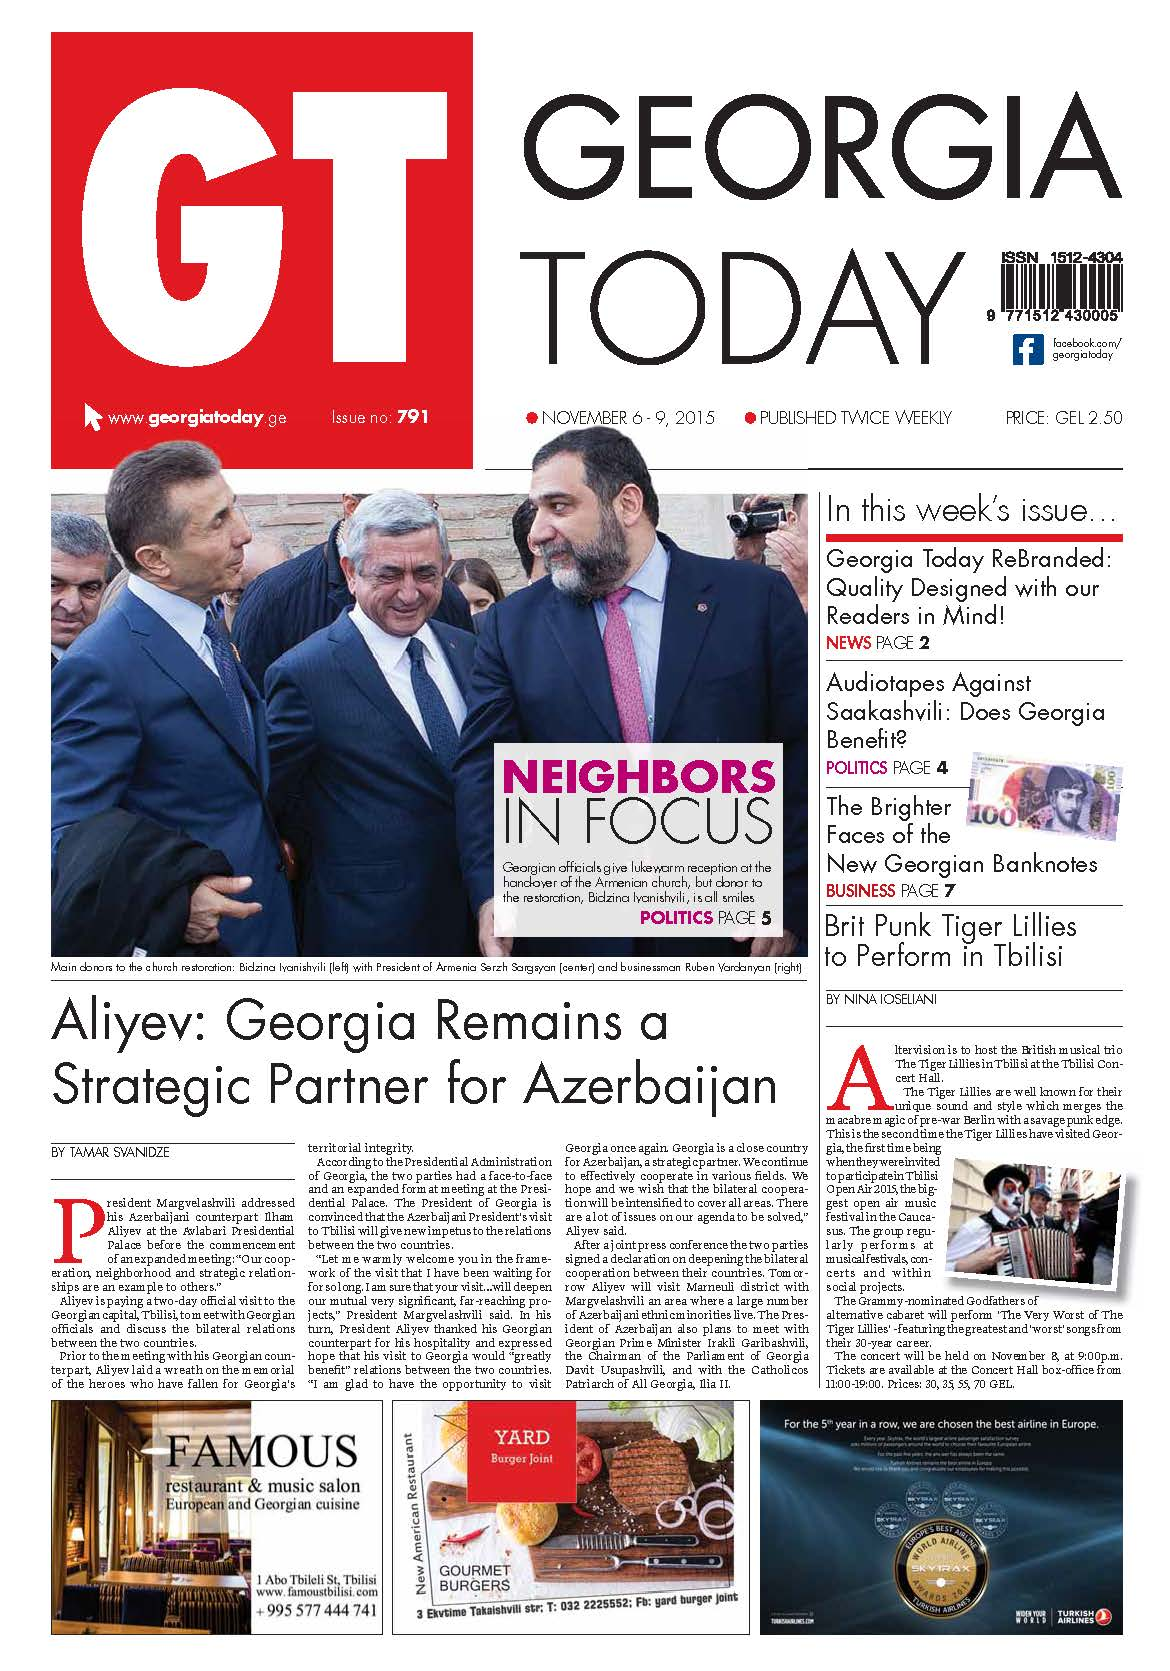 Front Page of the first re-branded issue of Georgia Today.